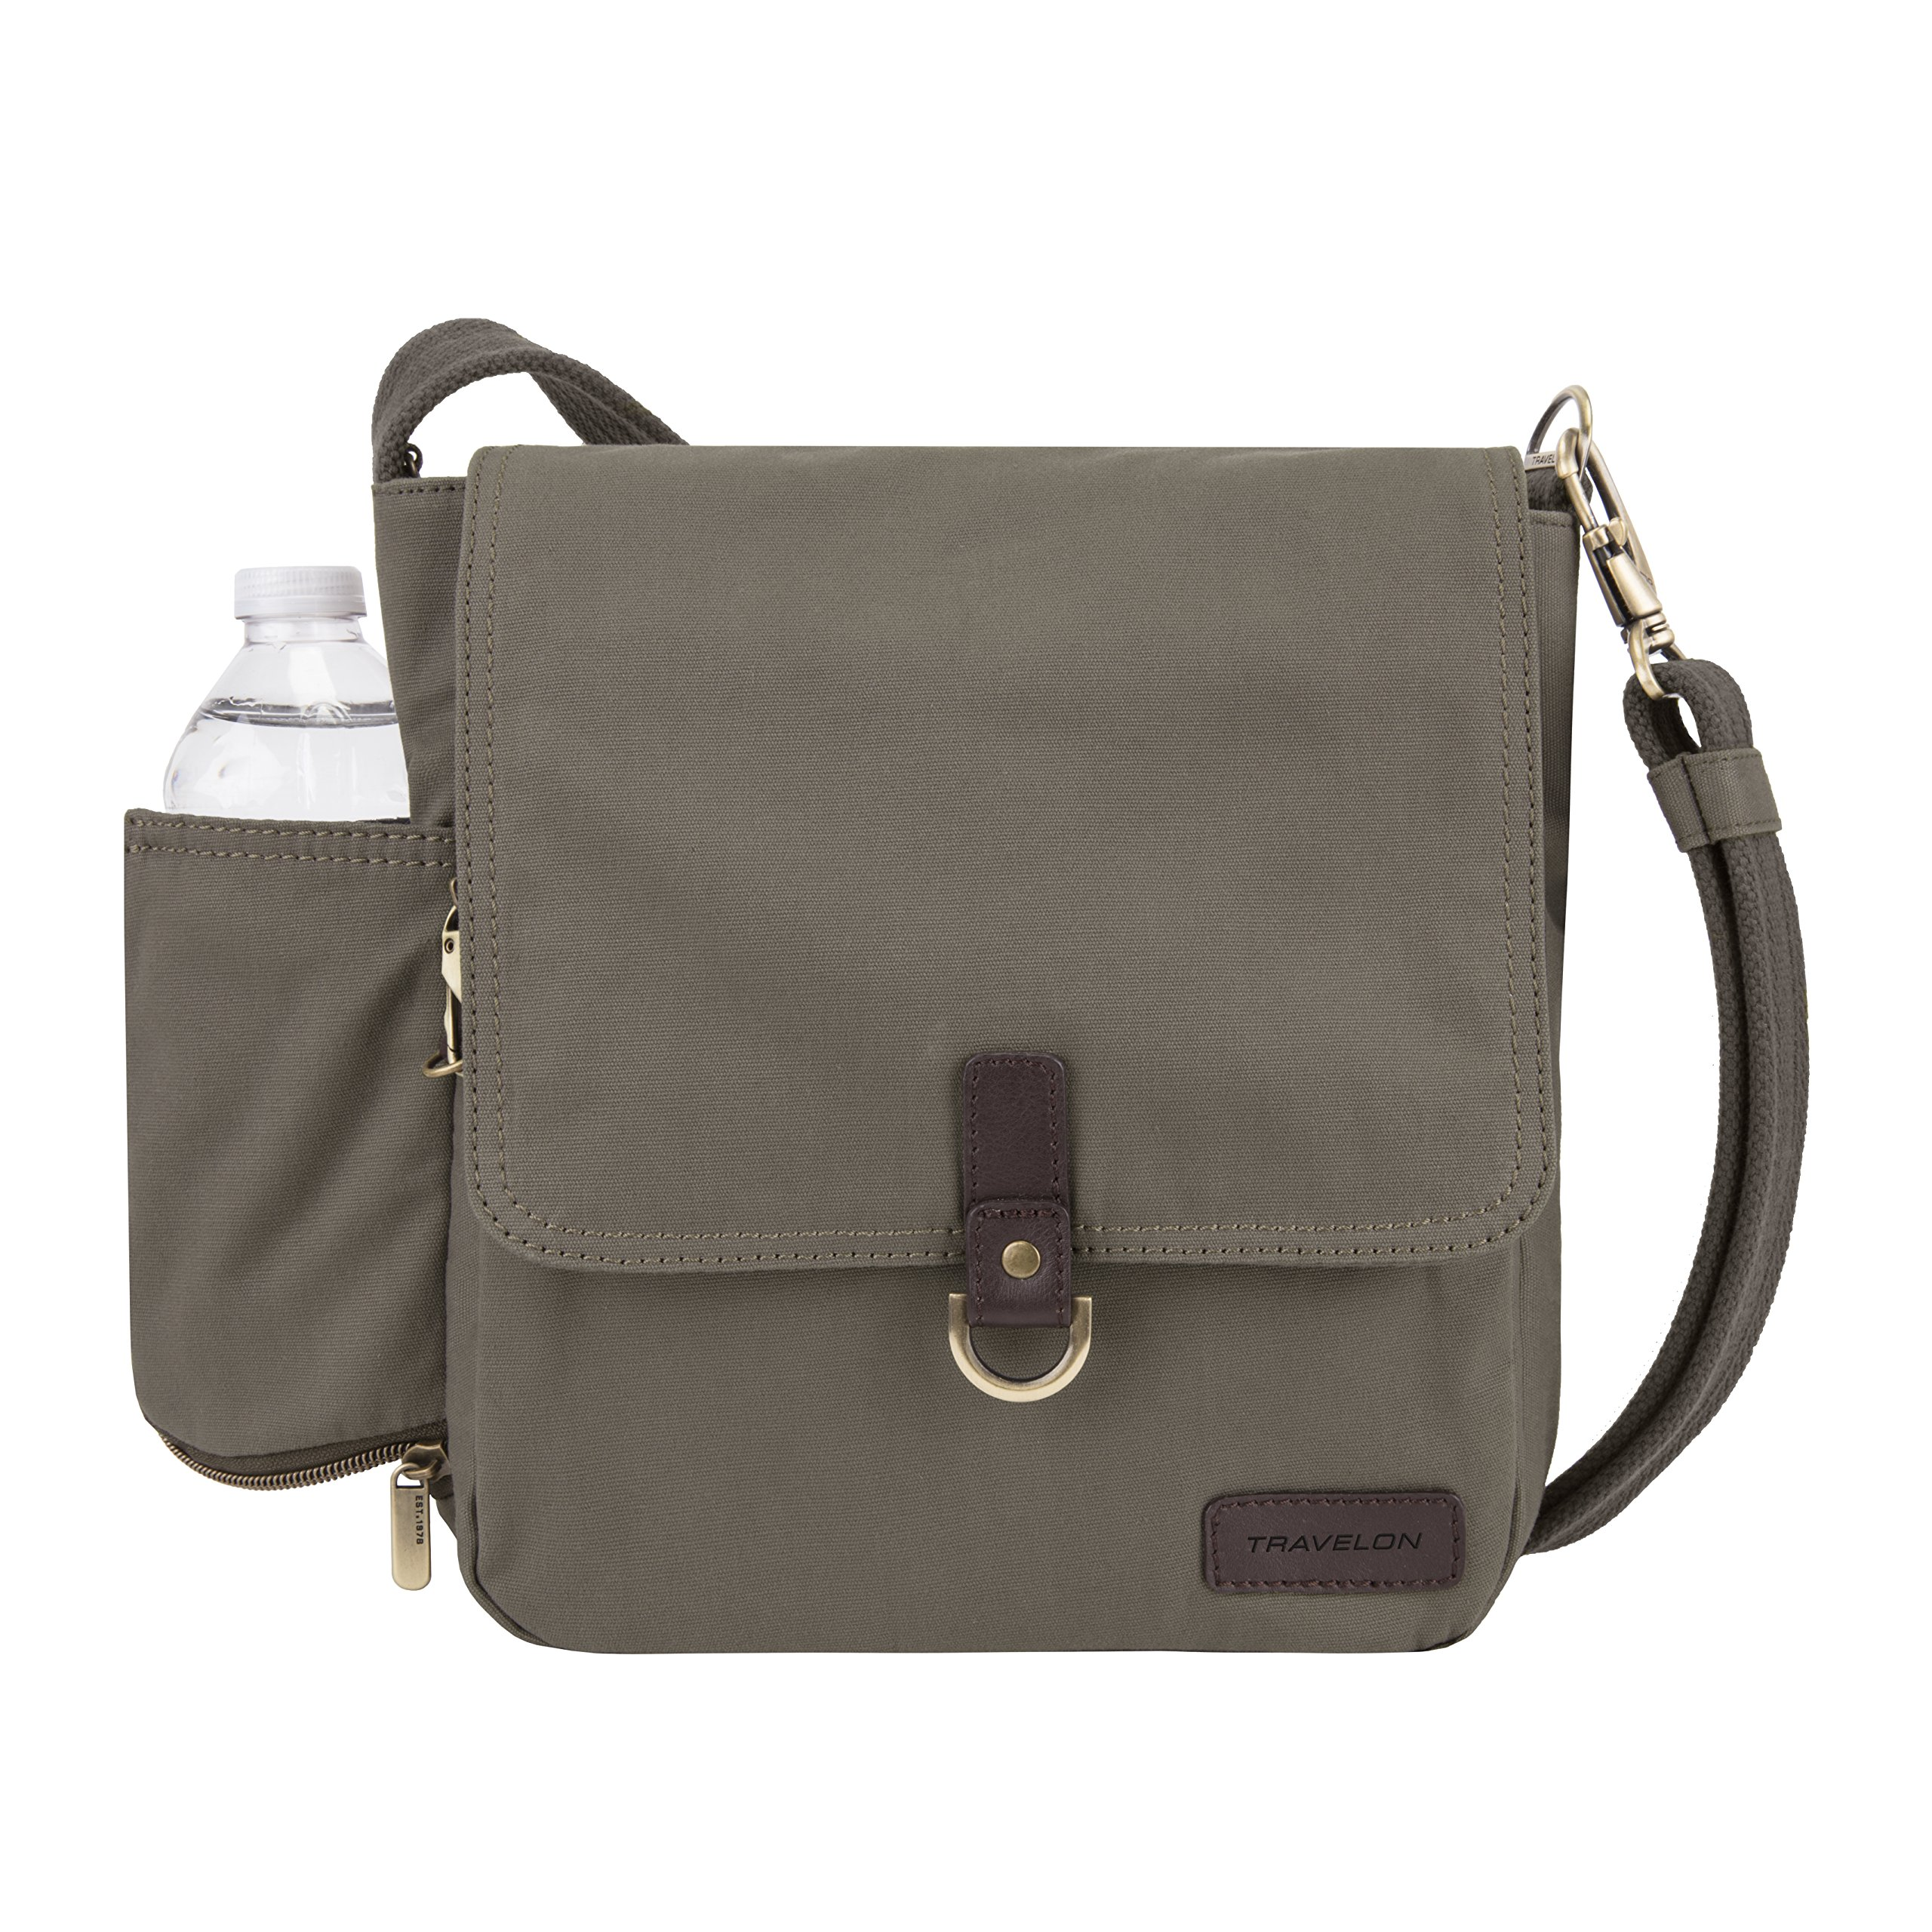 Travelon Women's Anti-Theft Courier Tour Bag Travel Tote, Stone Gray, One Size by Travelon (Image #1)